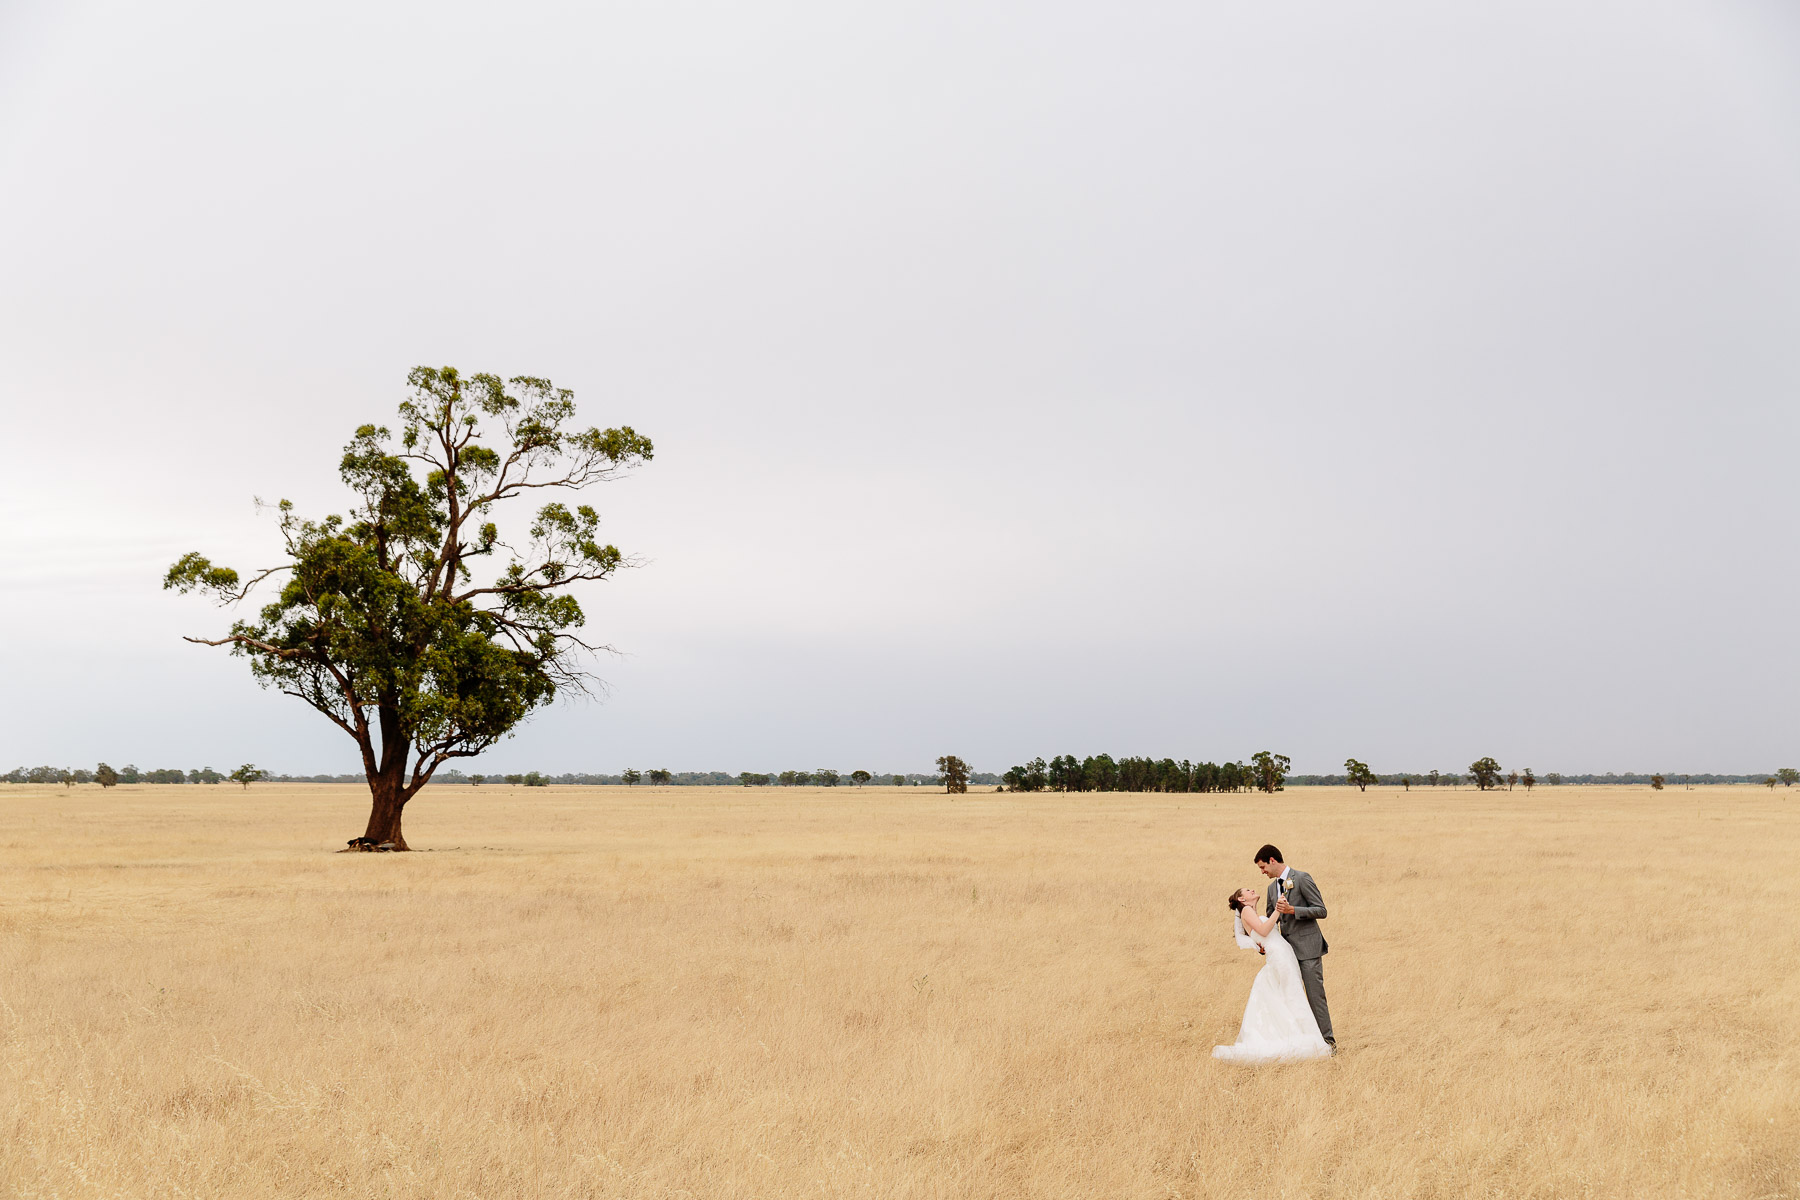 Justin_and_Jim_Best_Of_Wedding_Photography-75.jpg